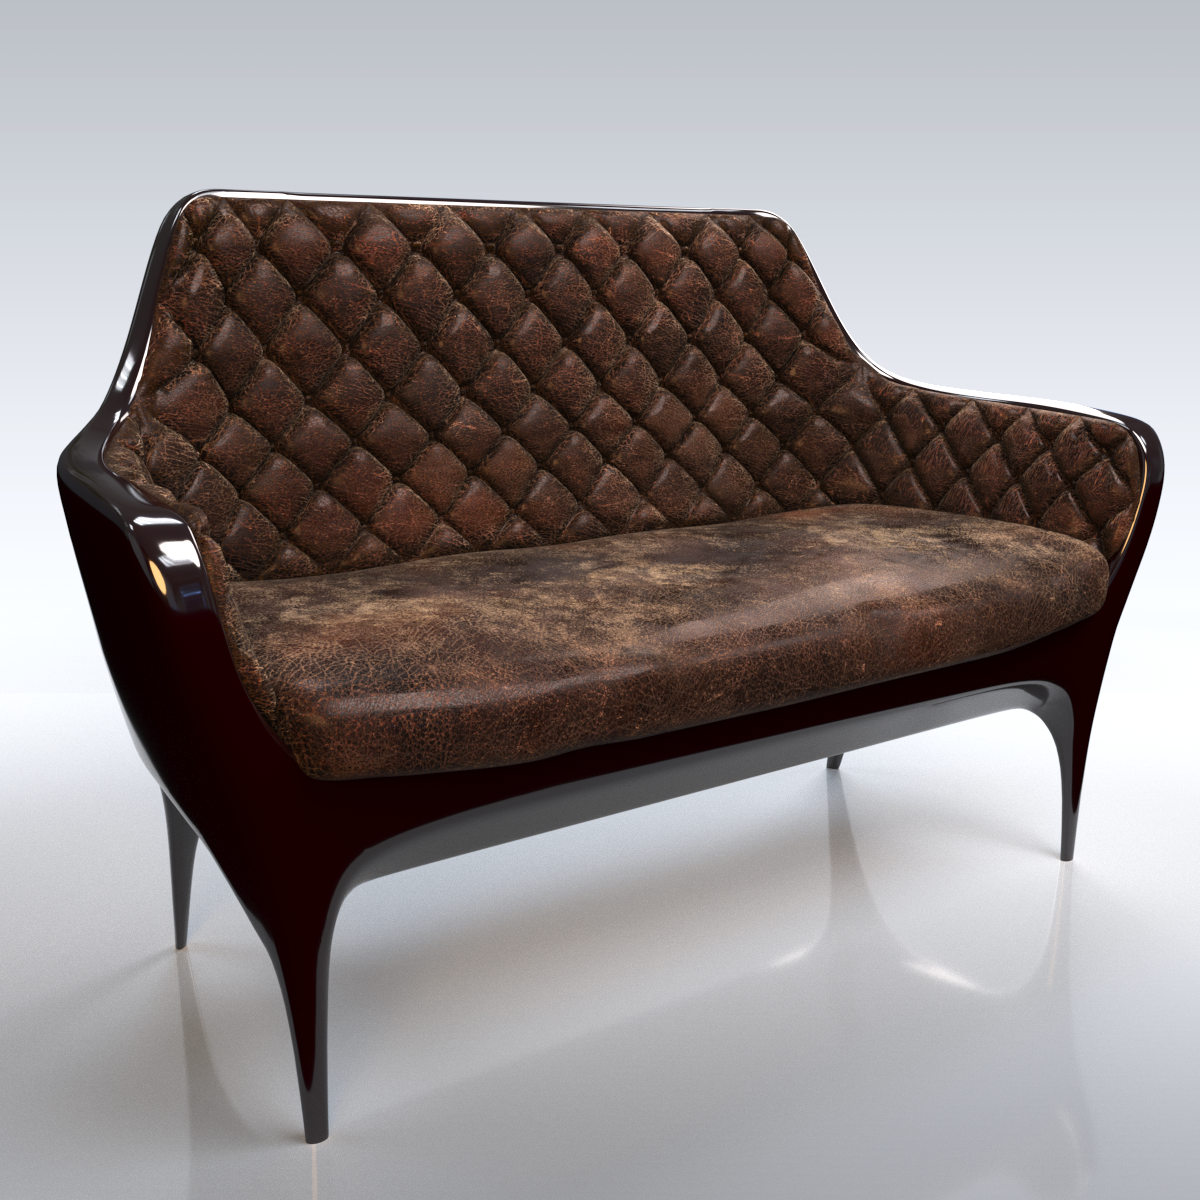 SHOWTIME SOFA By Jaime Hayon For BD Barcelona Desi 3D Model In Sofa 3DExport